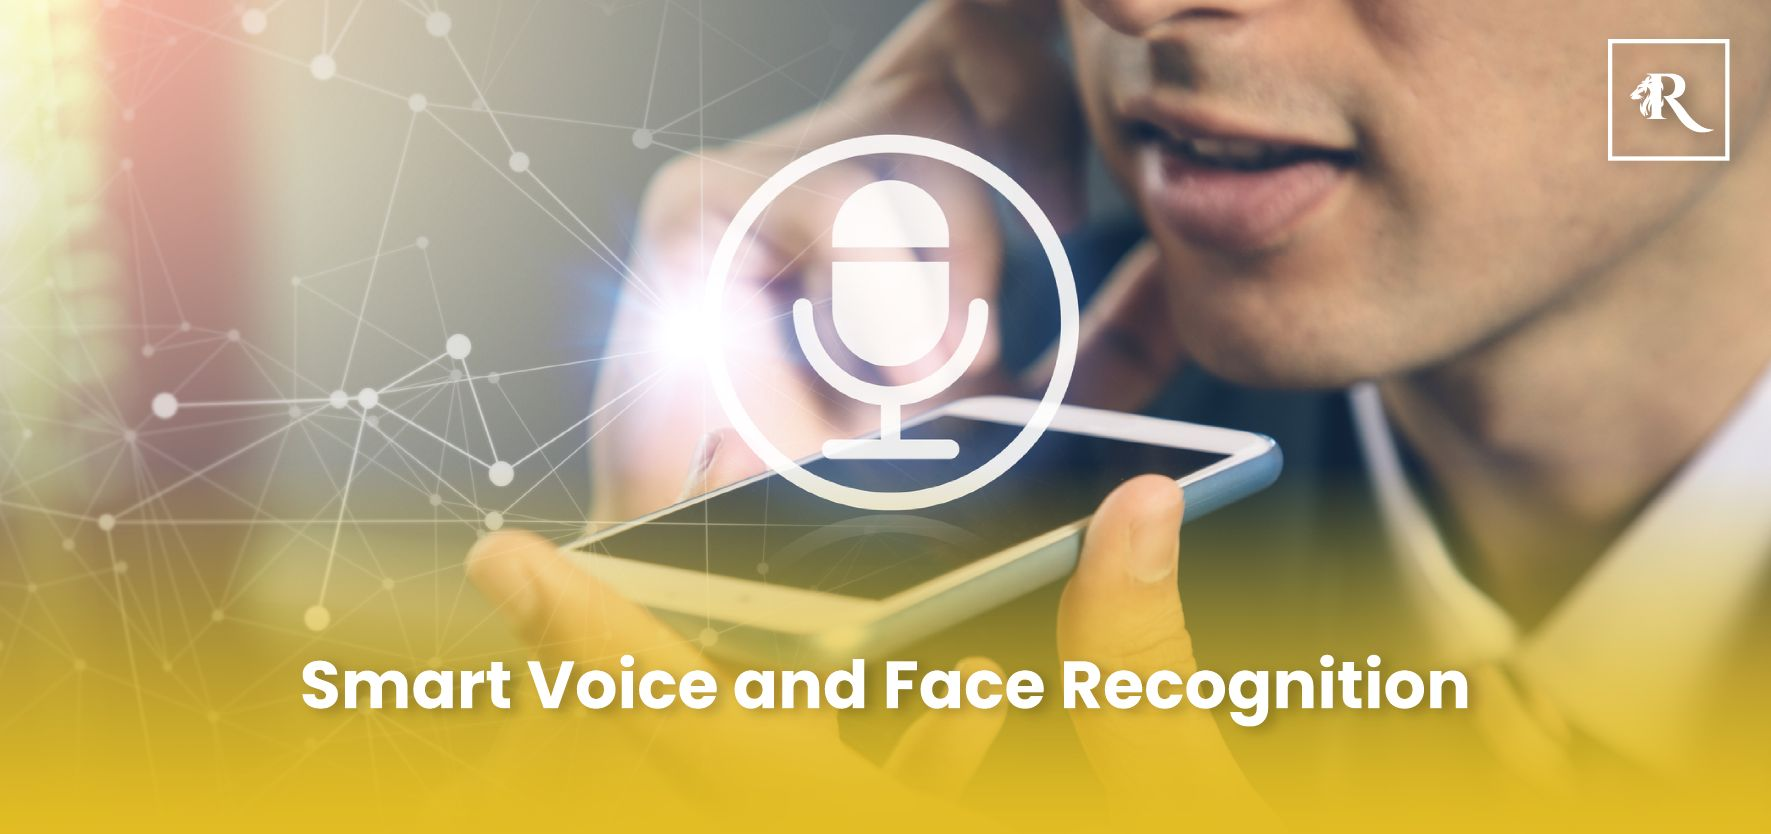 Smart Voice and Face Recognition in Regal Empire